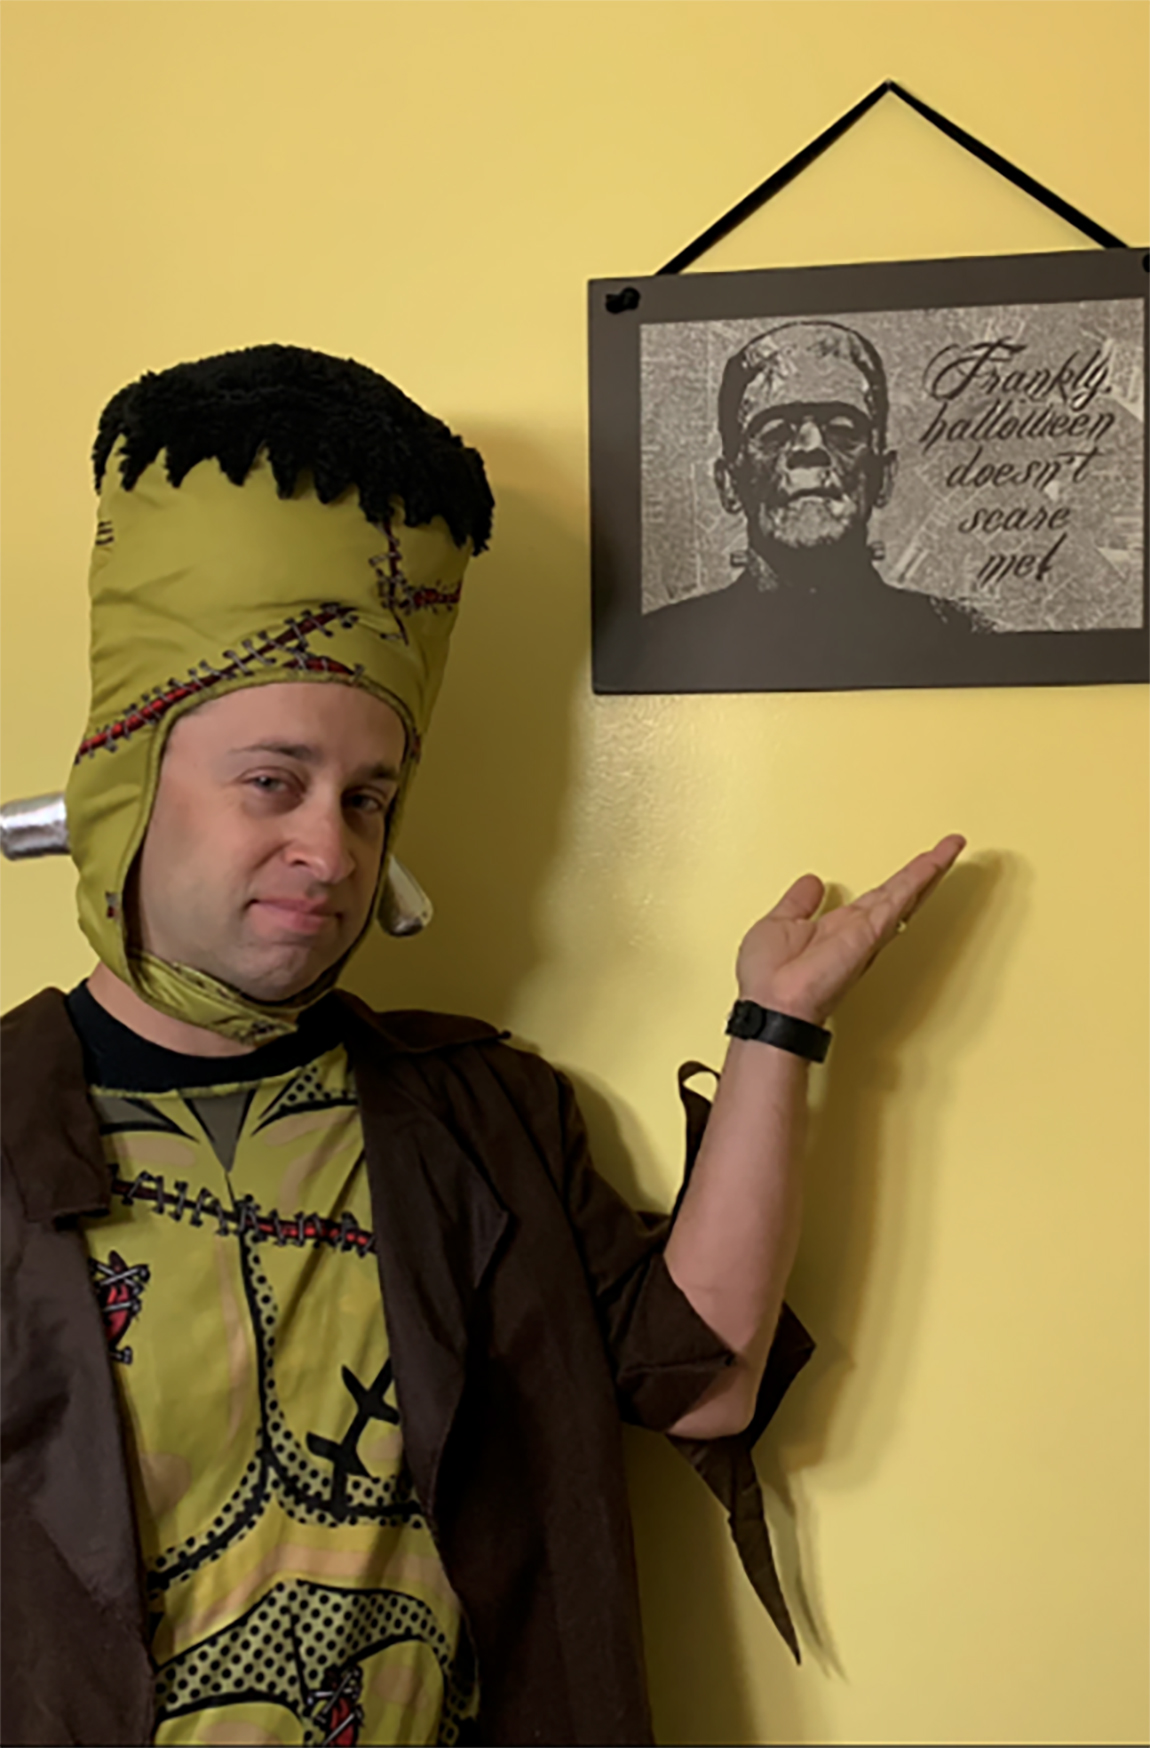 Jeff Frankenstein shows off his Frankenstein costume and his decorative Frankenstein sign at his Pennsylvania home. MUST CREDIT: Jeff Frankenstein.